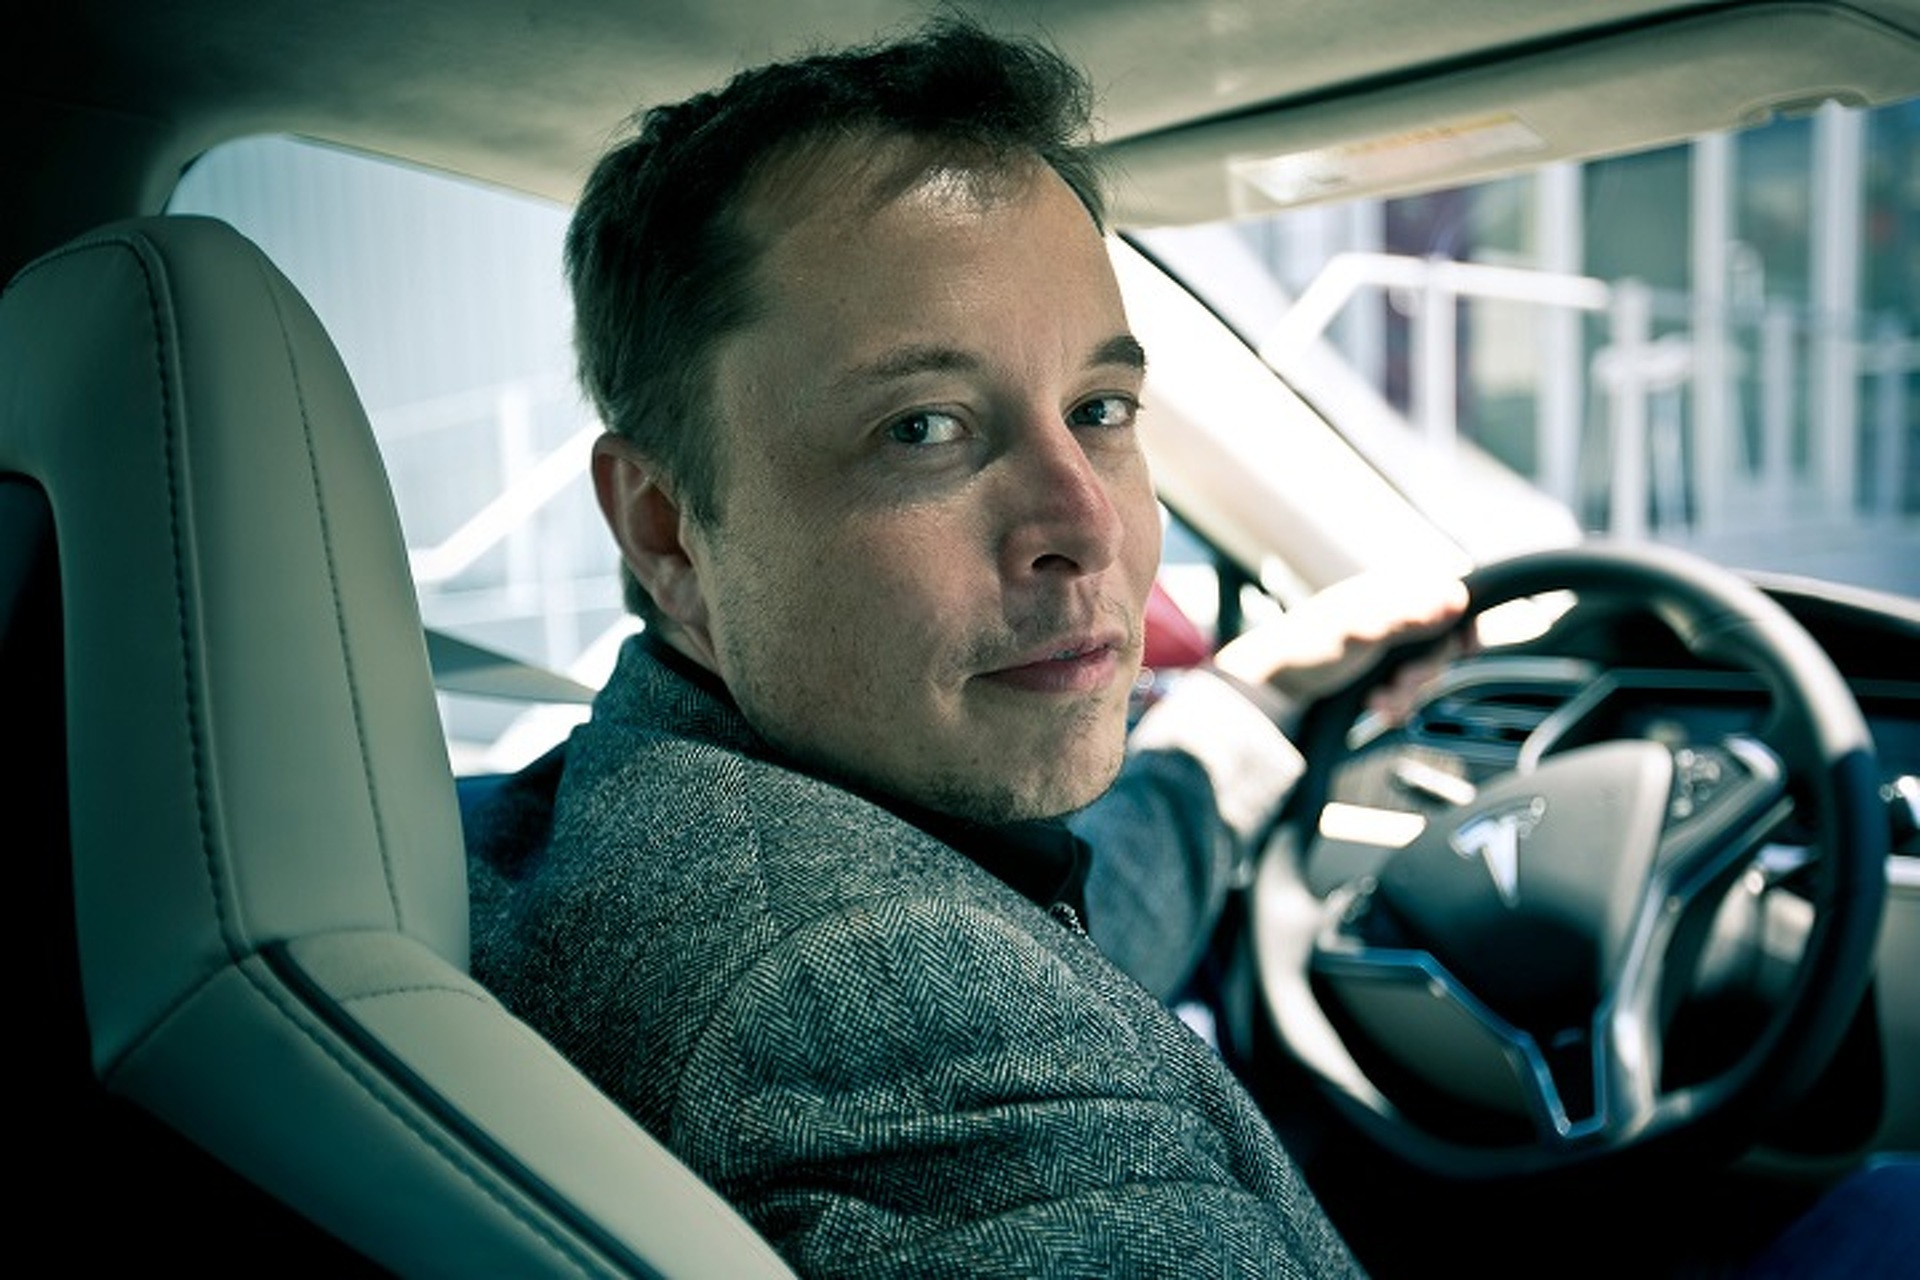 Elon Musk's Hyperloop Dream Becoming Reality